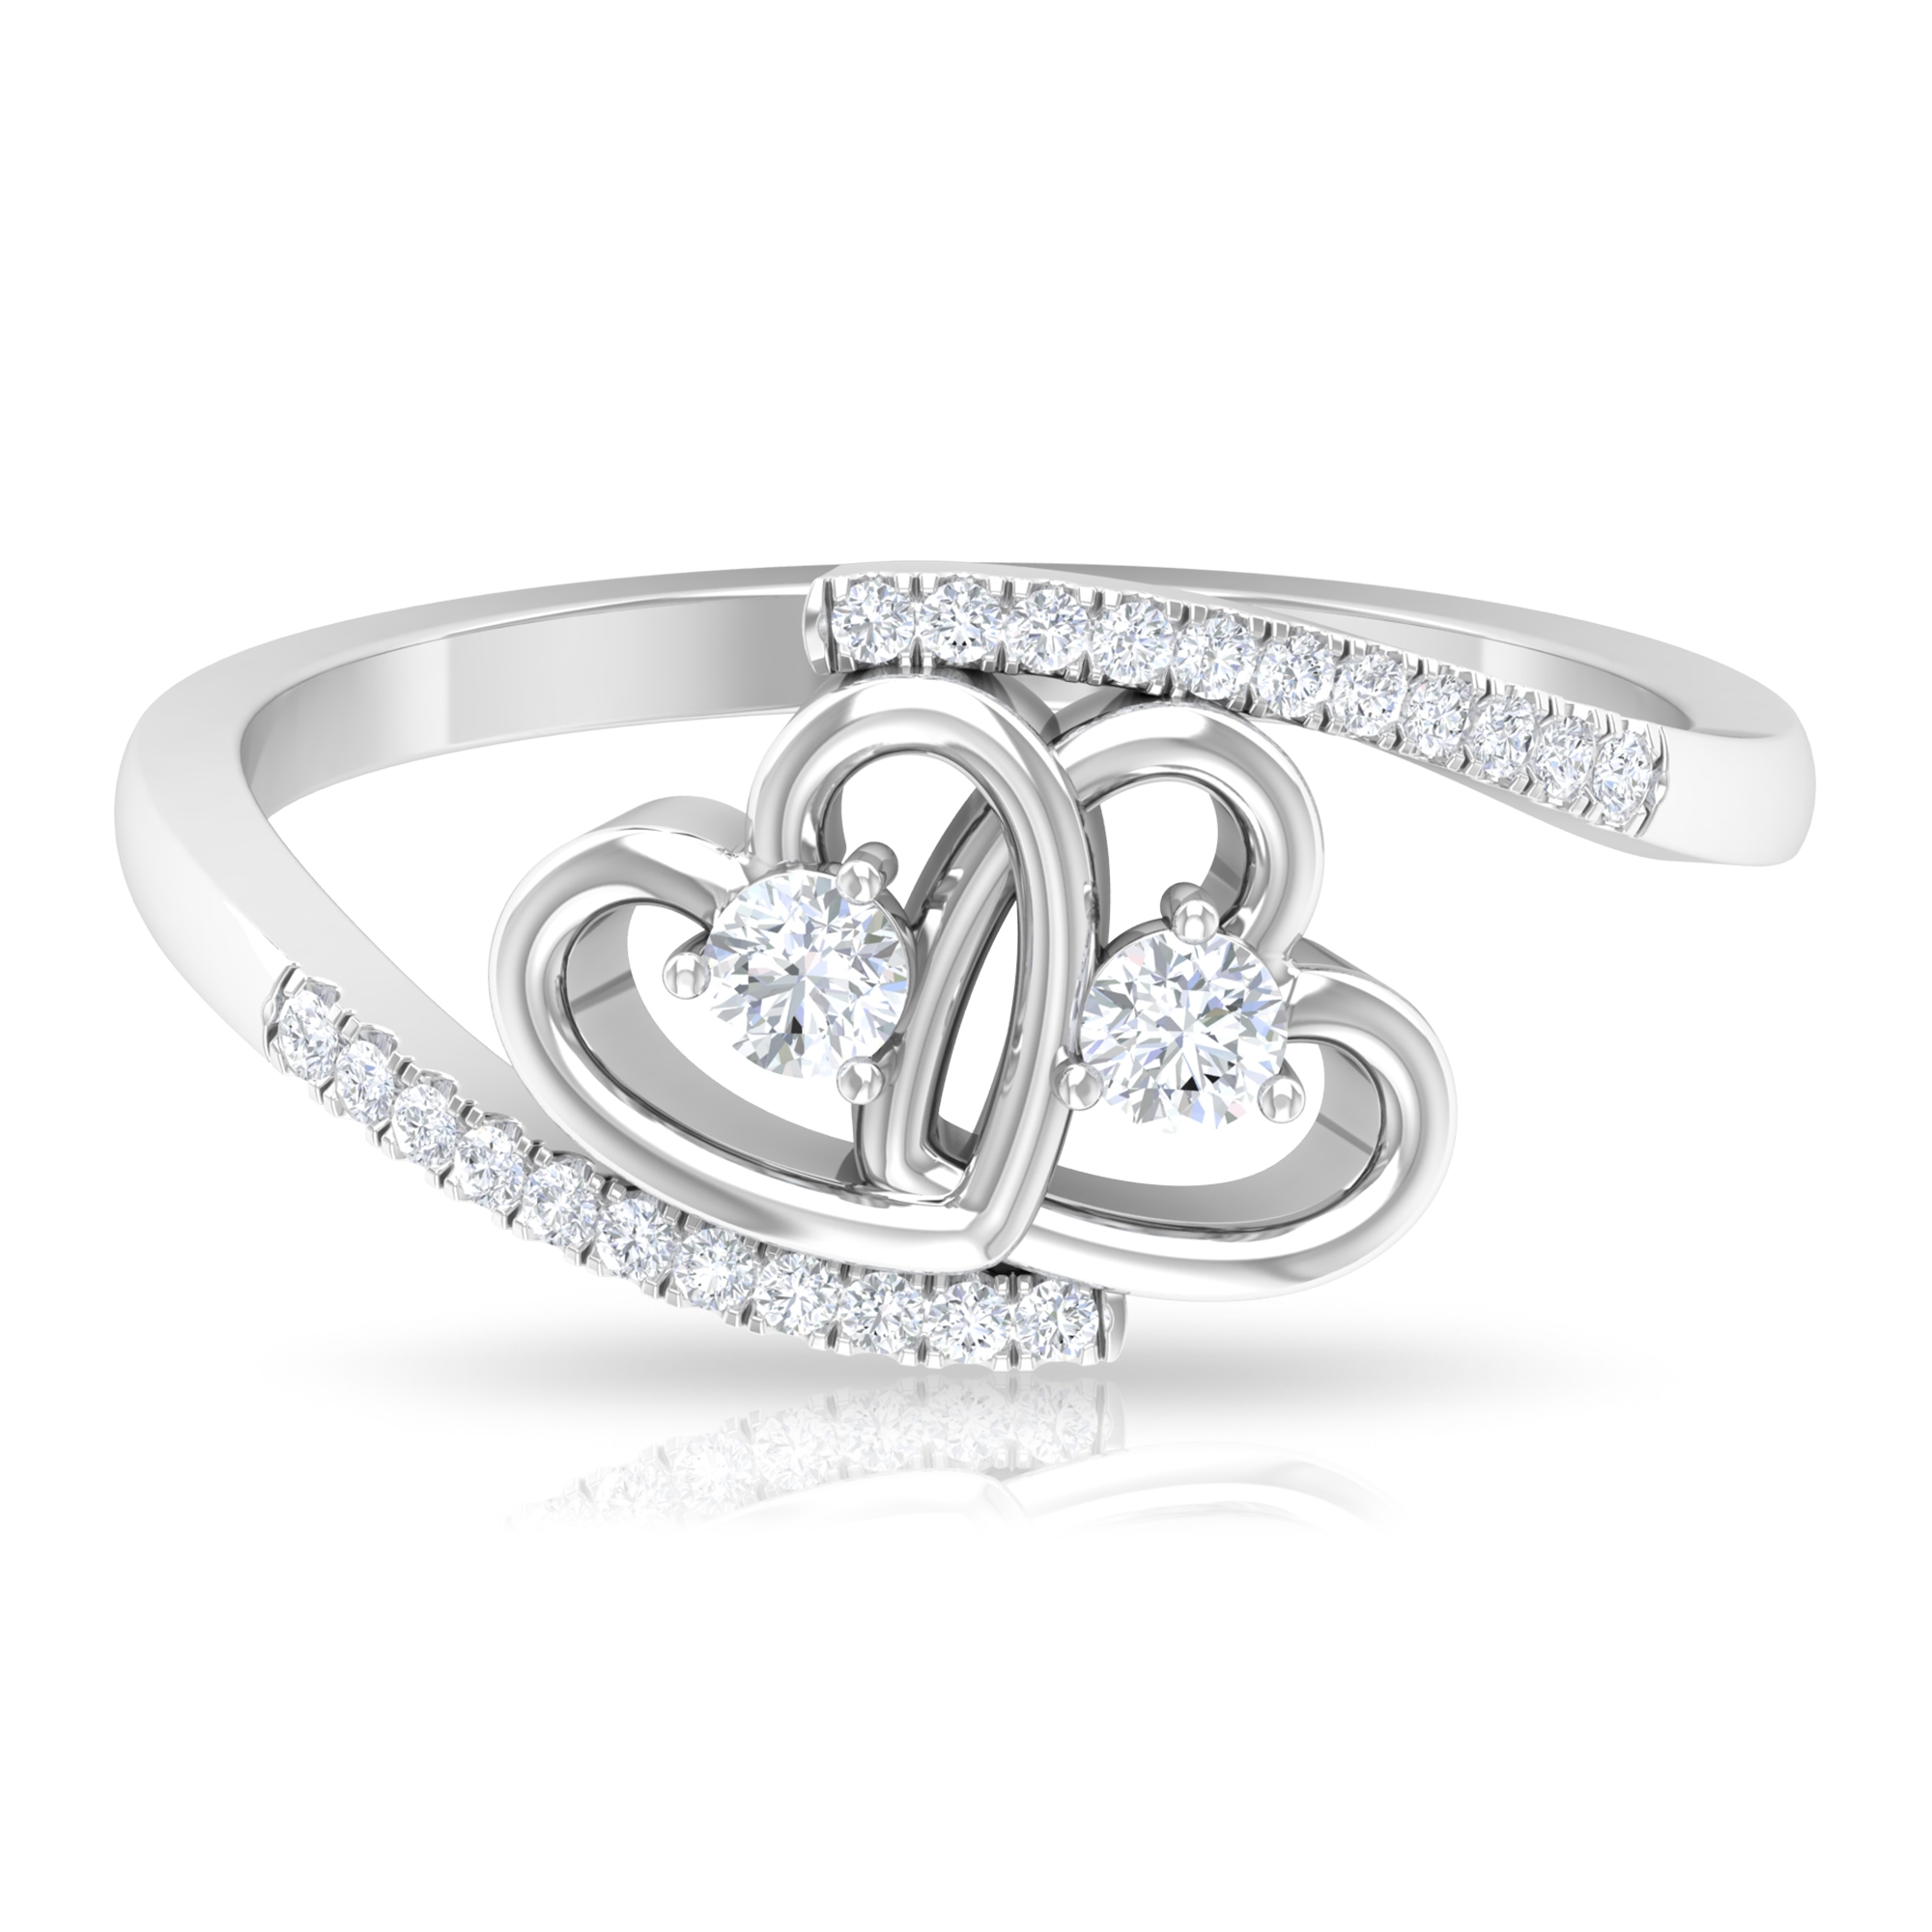 1/4 CT Diamond Twin Heart Ring in Prong Setting with Bypass Shank